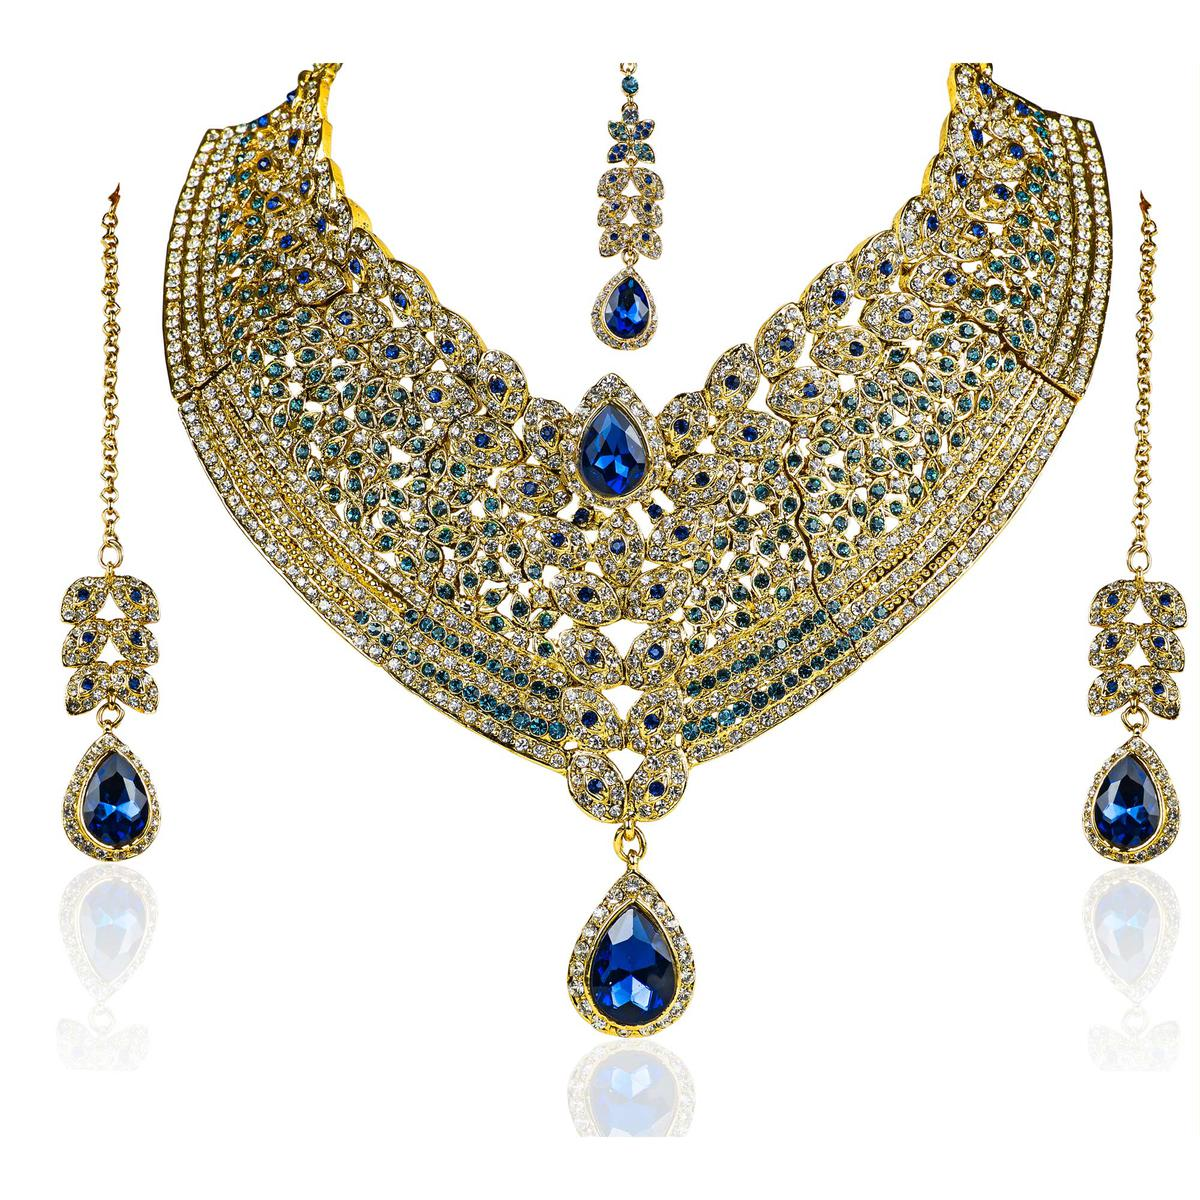 Royal Blue Attractive Necklace Set With Maang Tikka